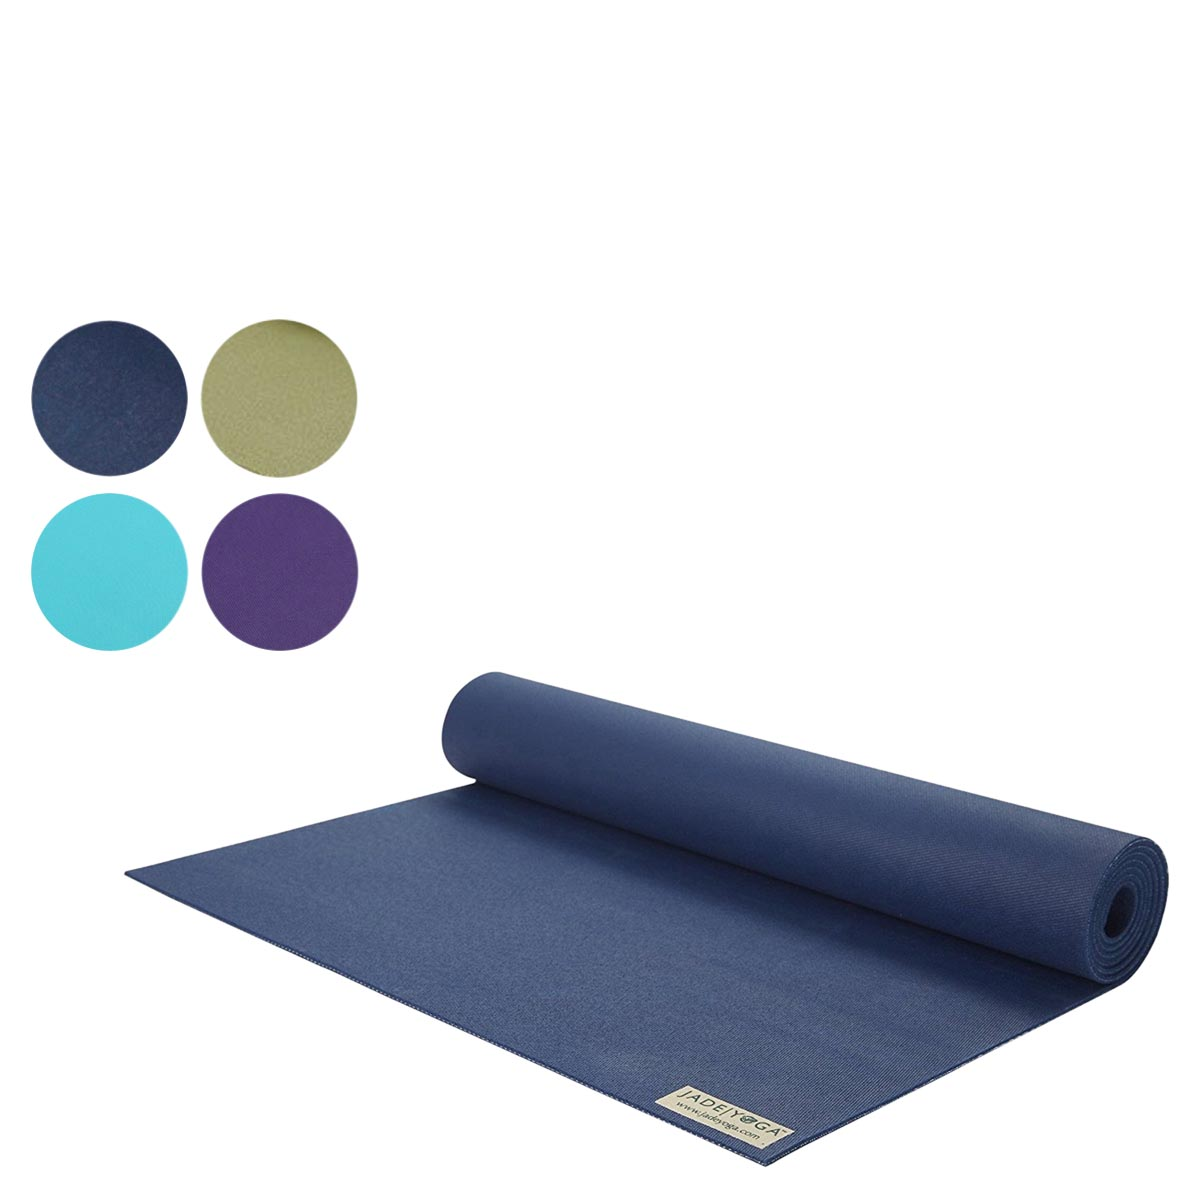 sales to sale jade com has cb global new market mat a mats yoga report reportsmonitor added